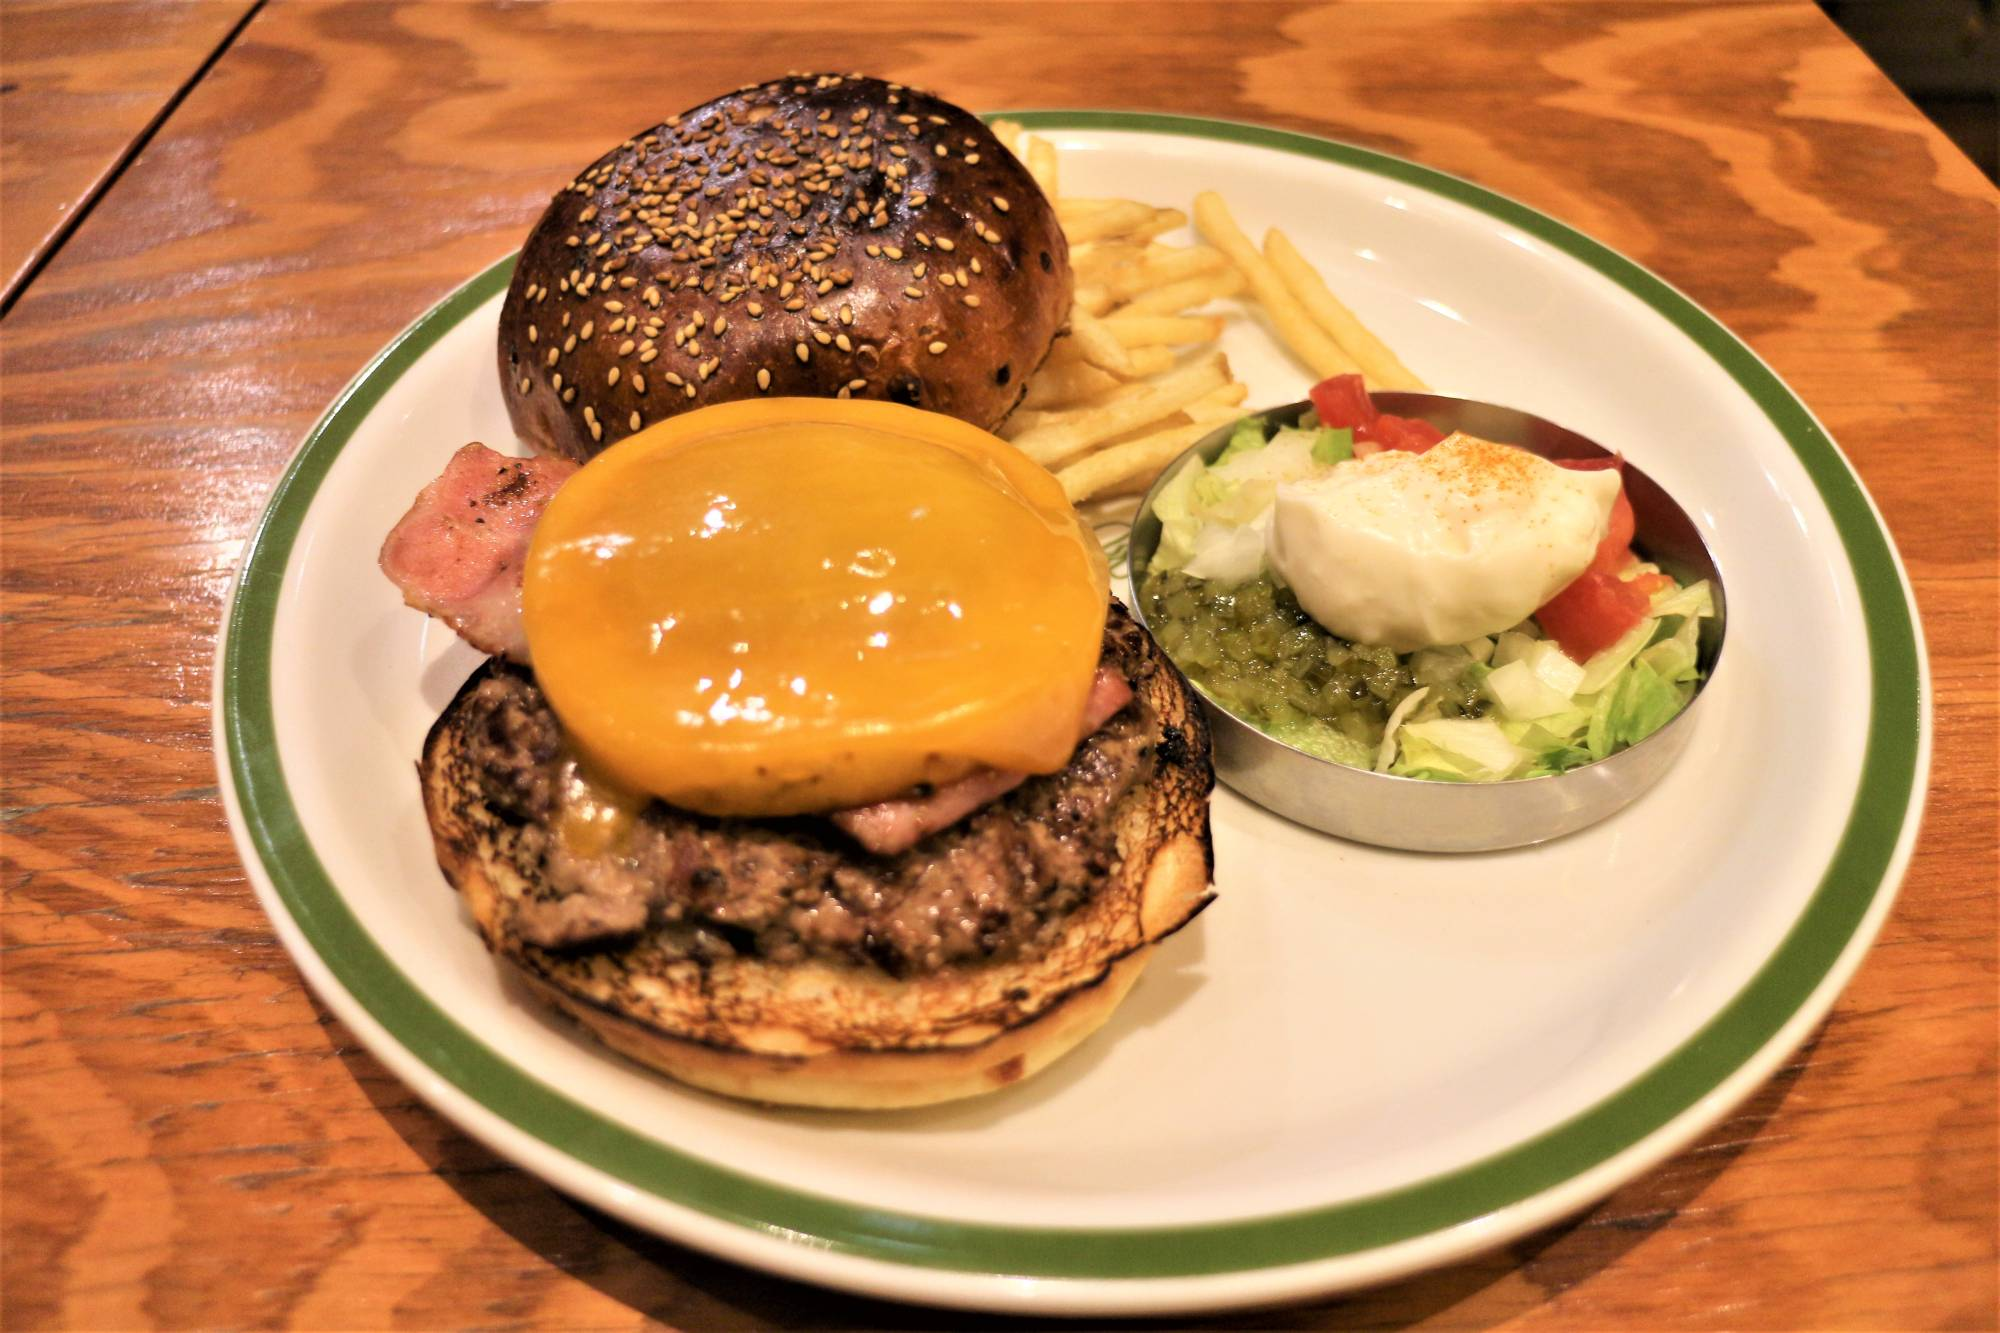 The Shop Burger (¥1,450) at The Burger Shop comes topped with pineapple, half-melted cheese, grated onion and barbecue sauce, plus a side salad. | HARUKA MURAYAMA